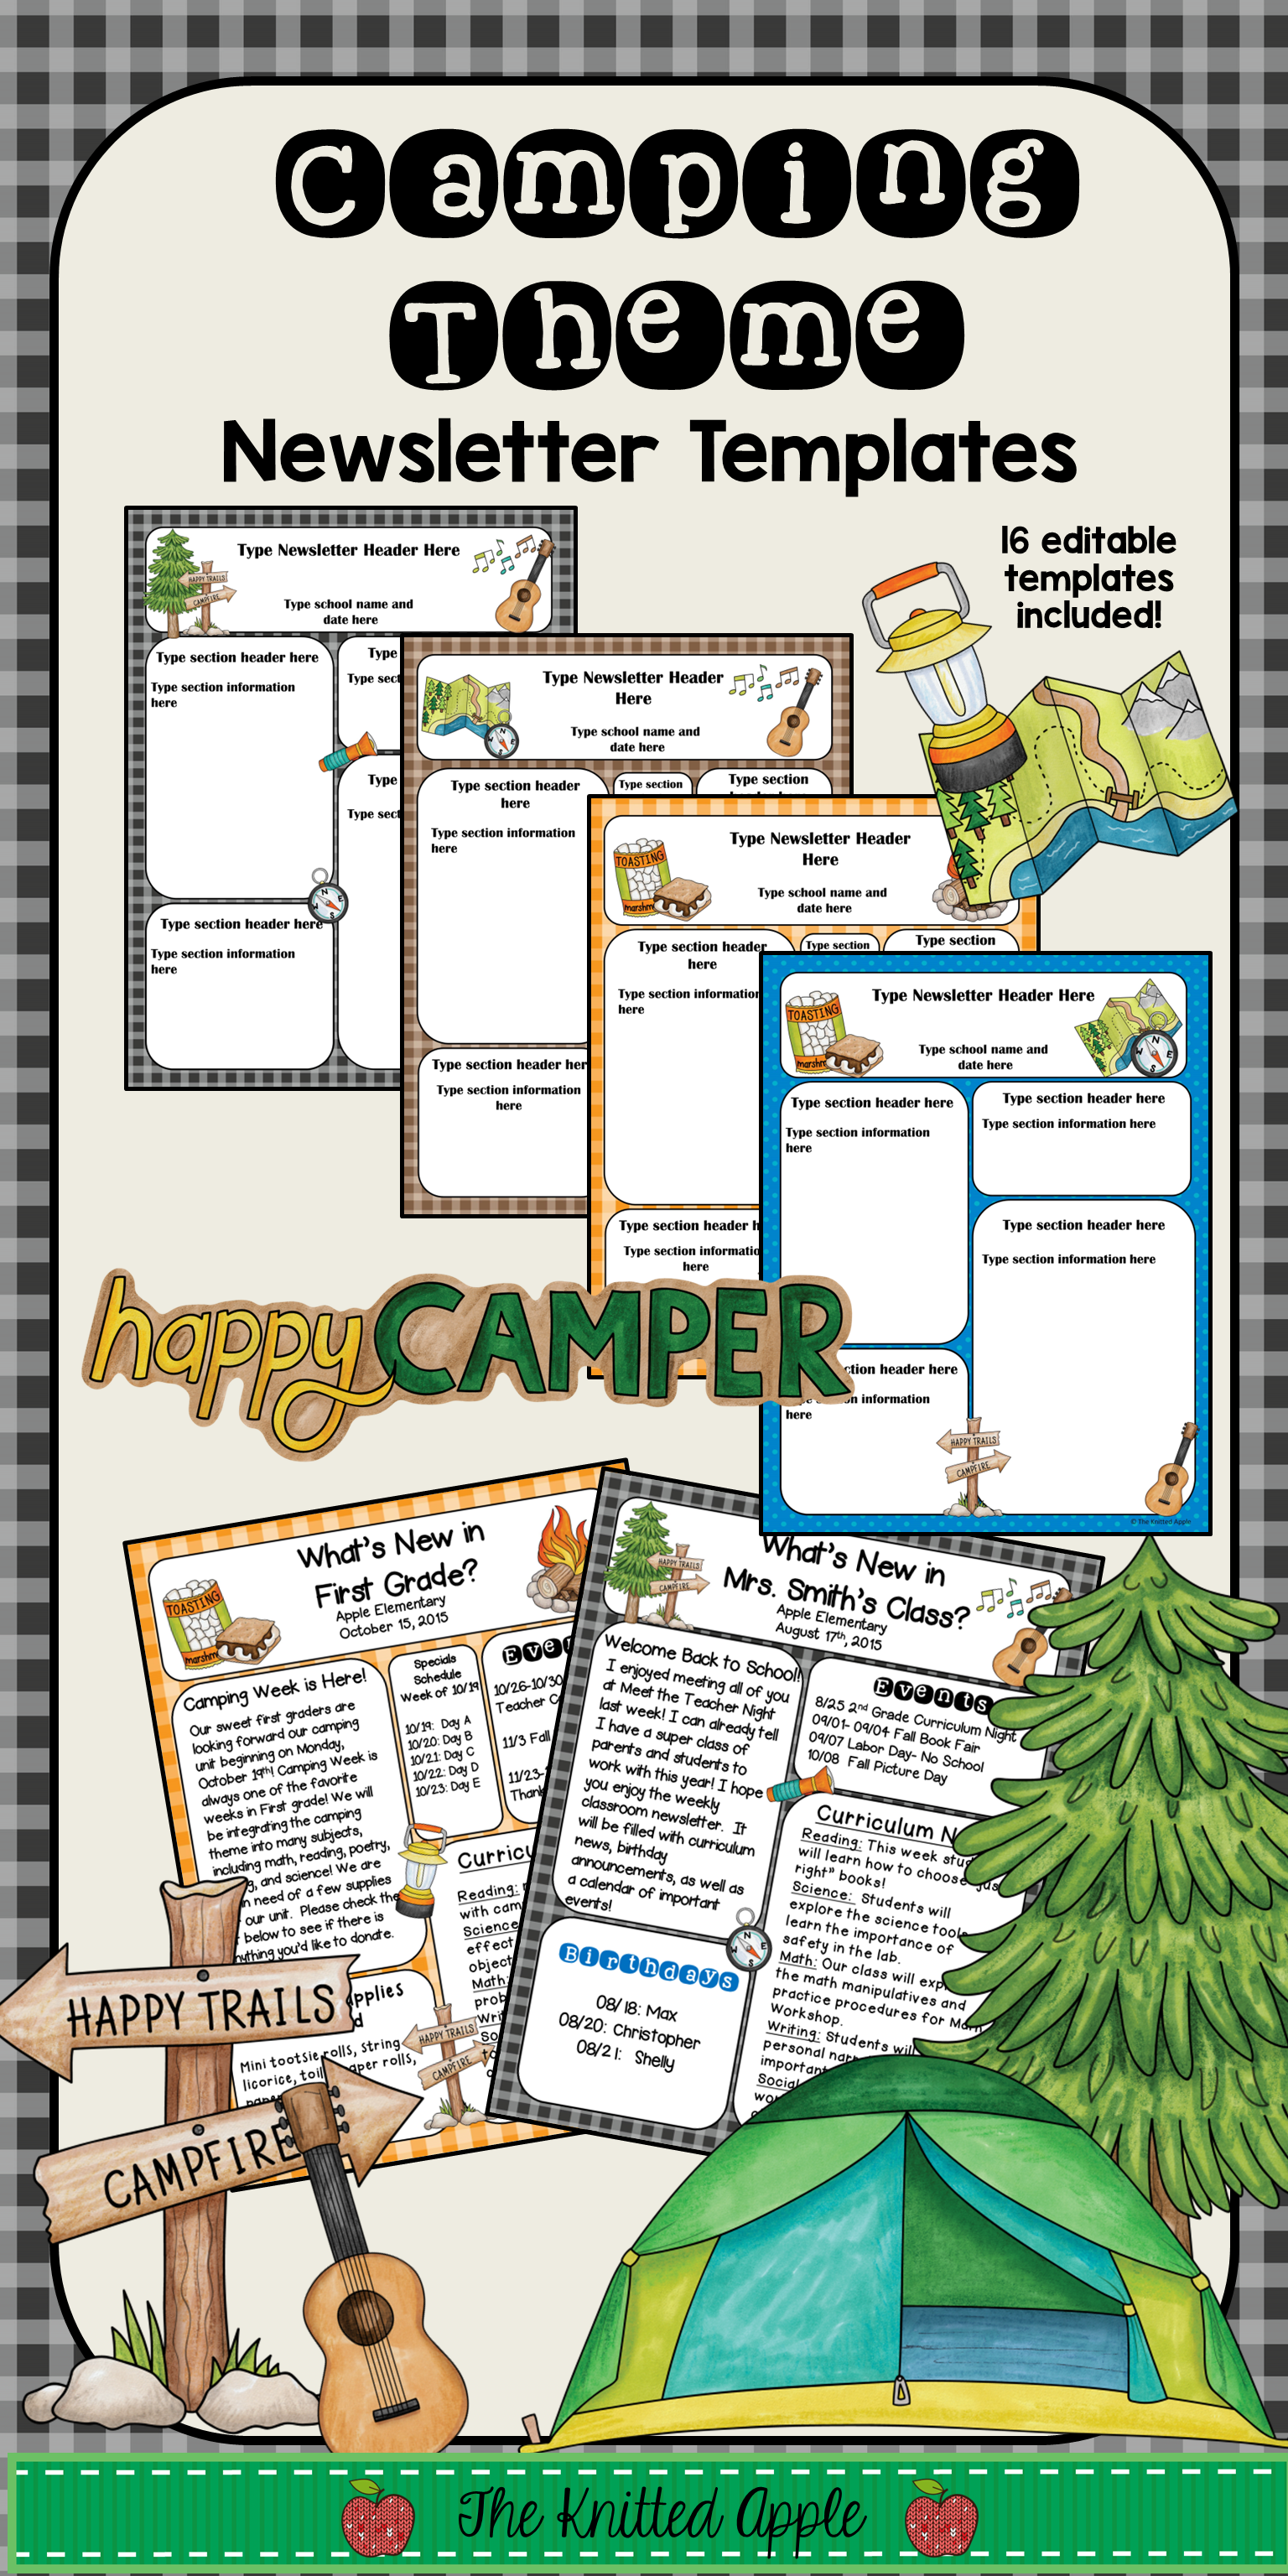 camping theme newsletter templates camping theme newsletter